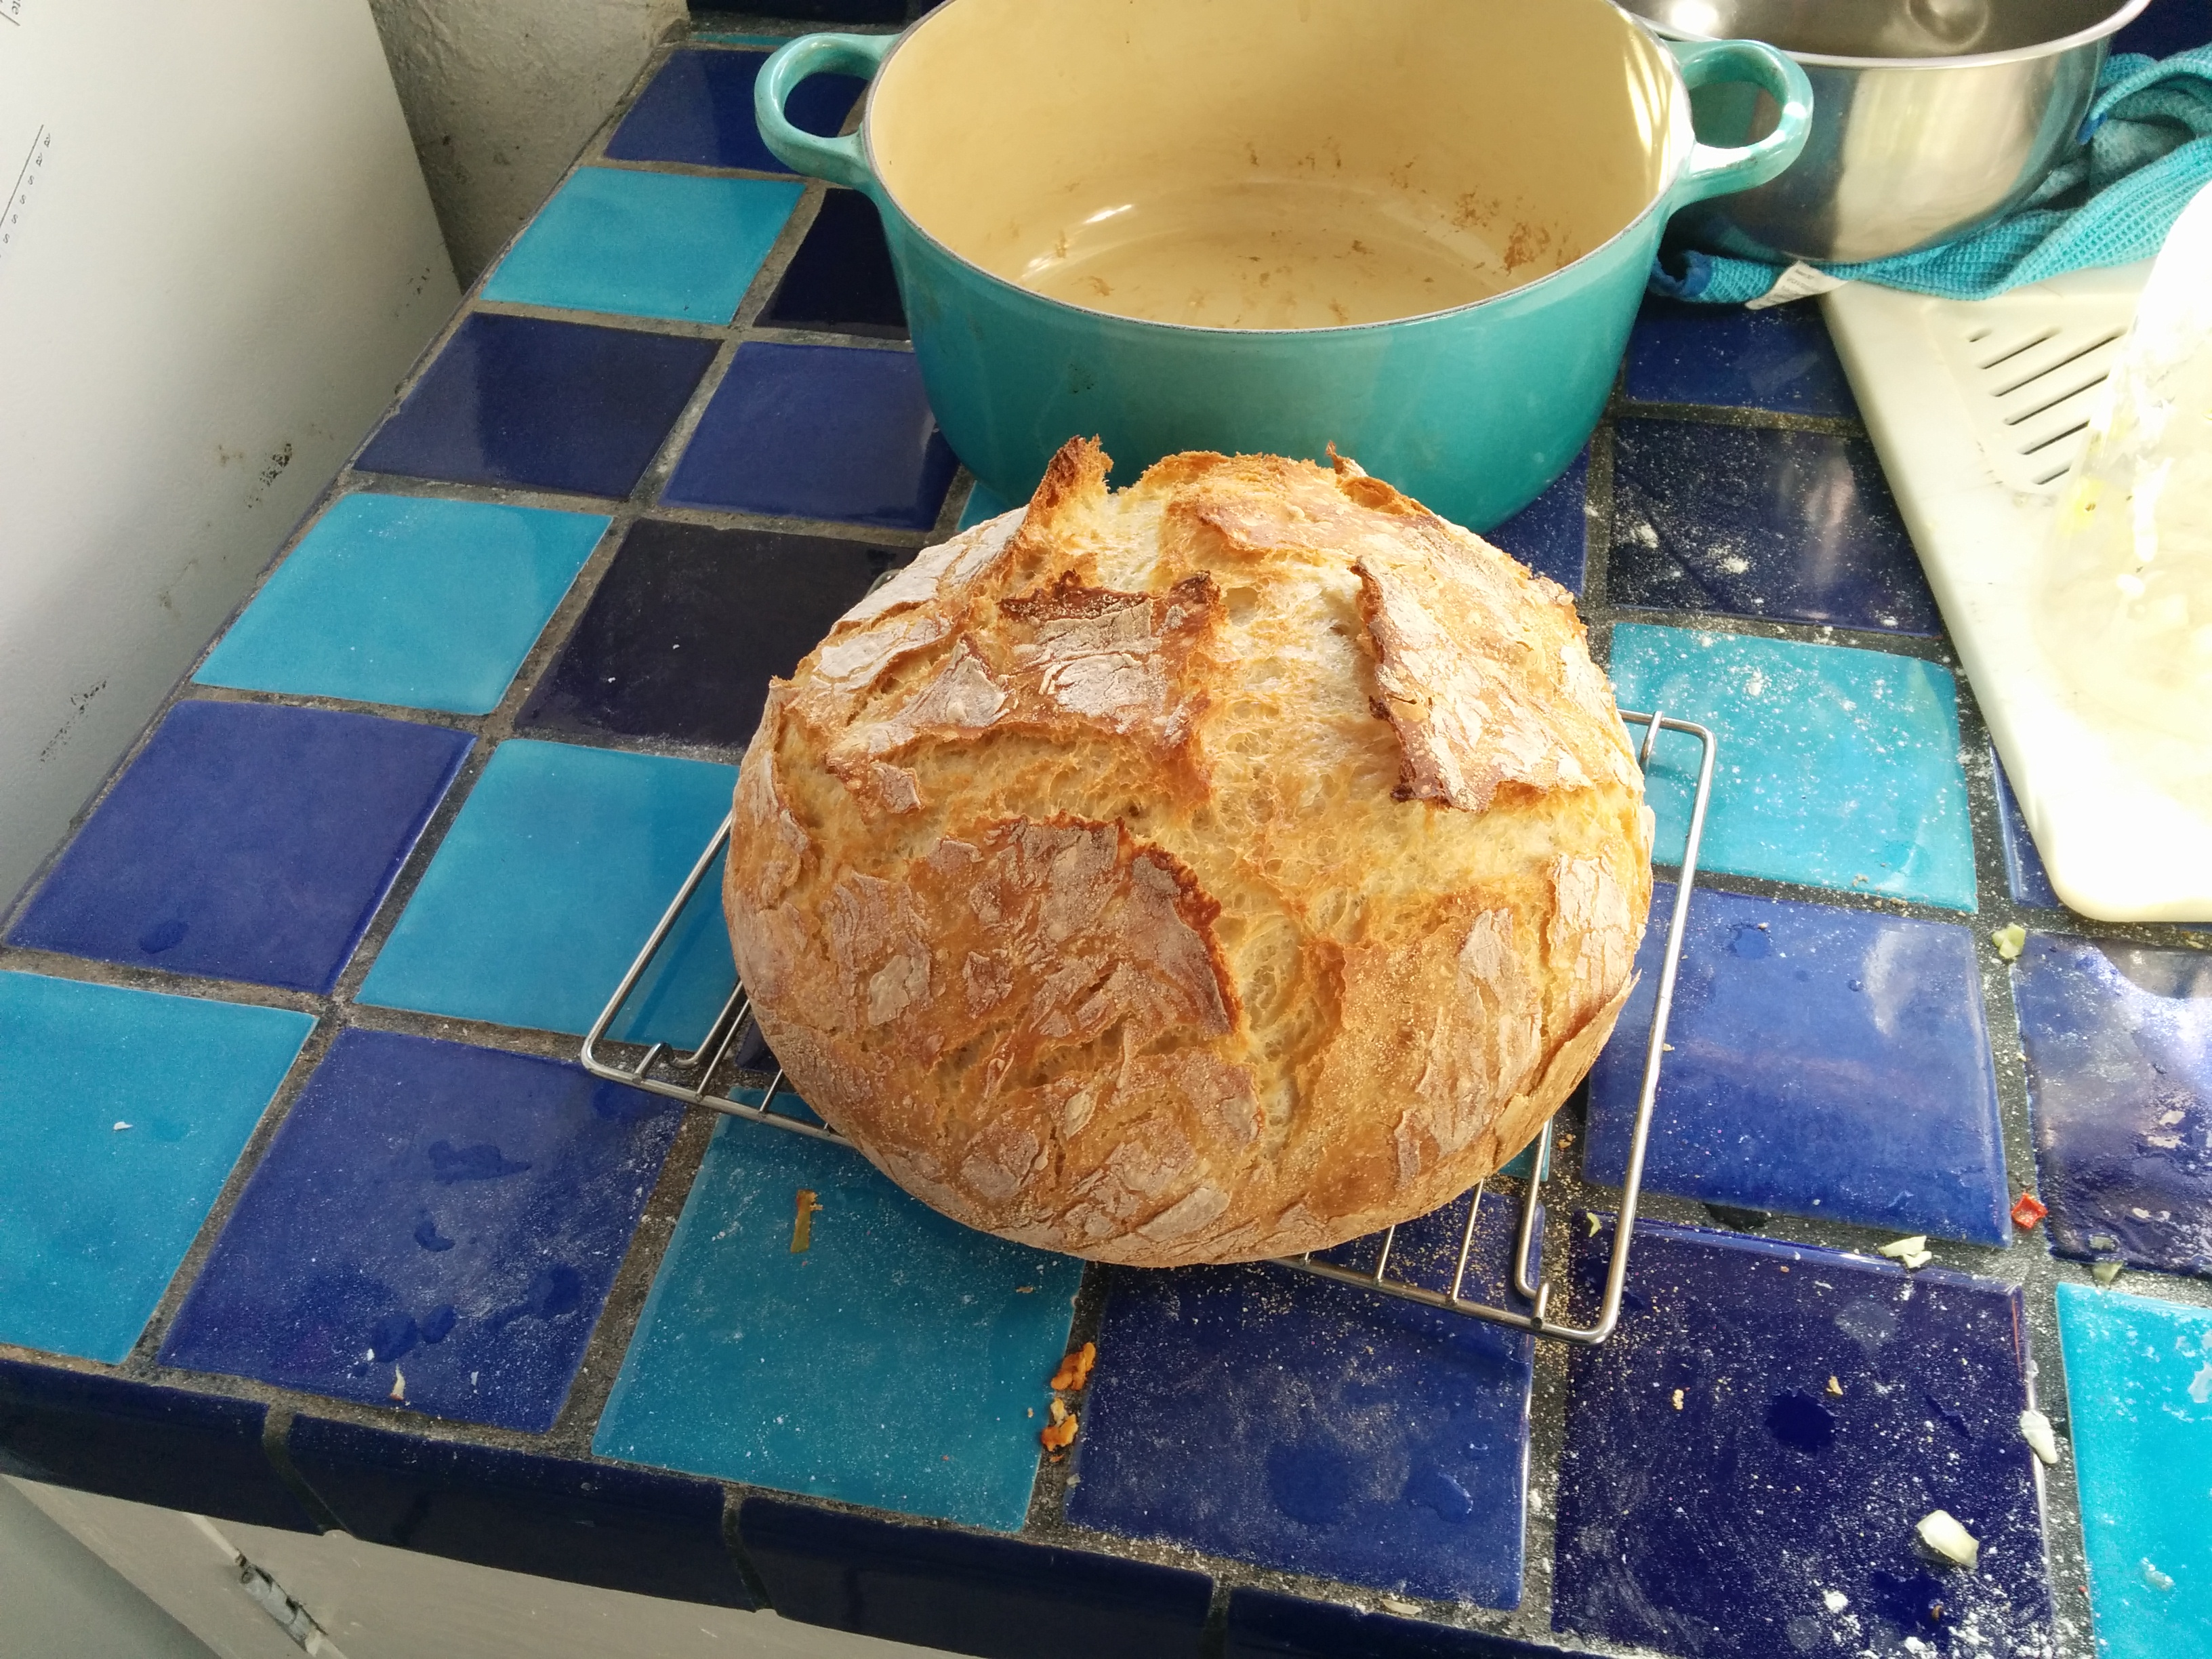 The most recent loaf of dutch-oven bread.